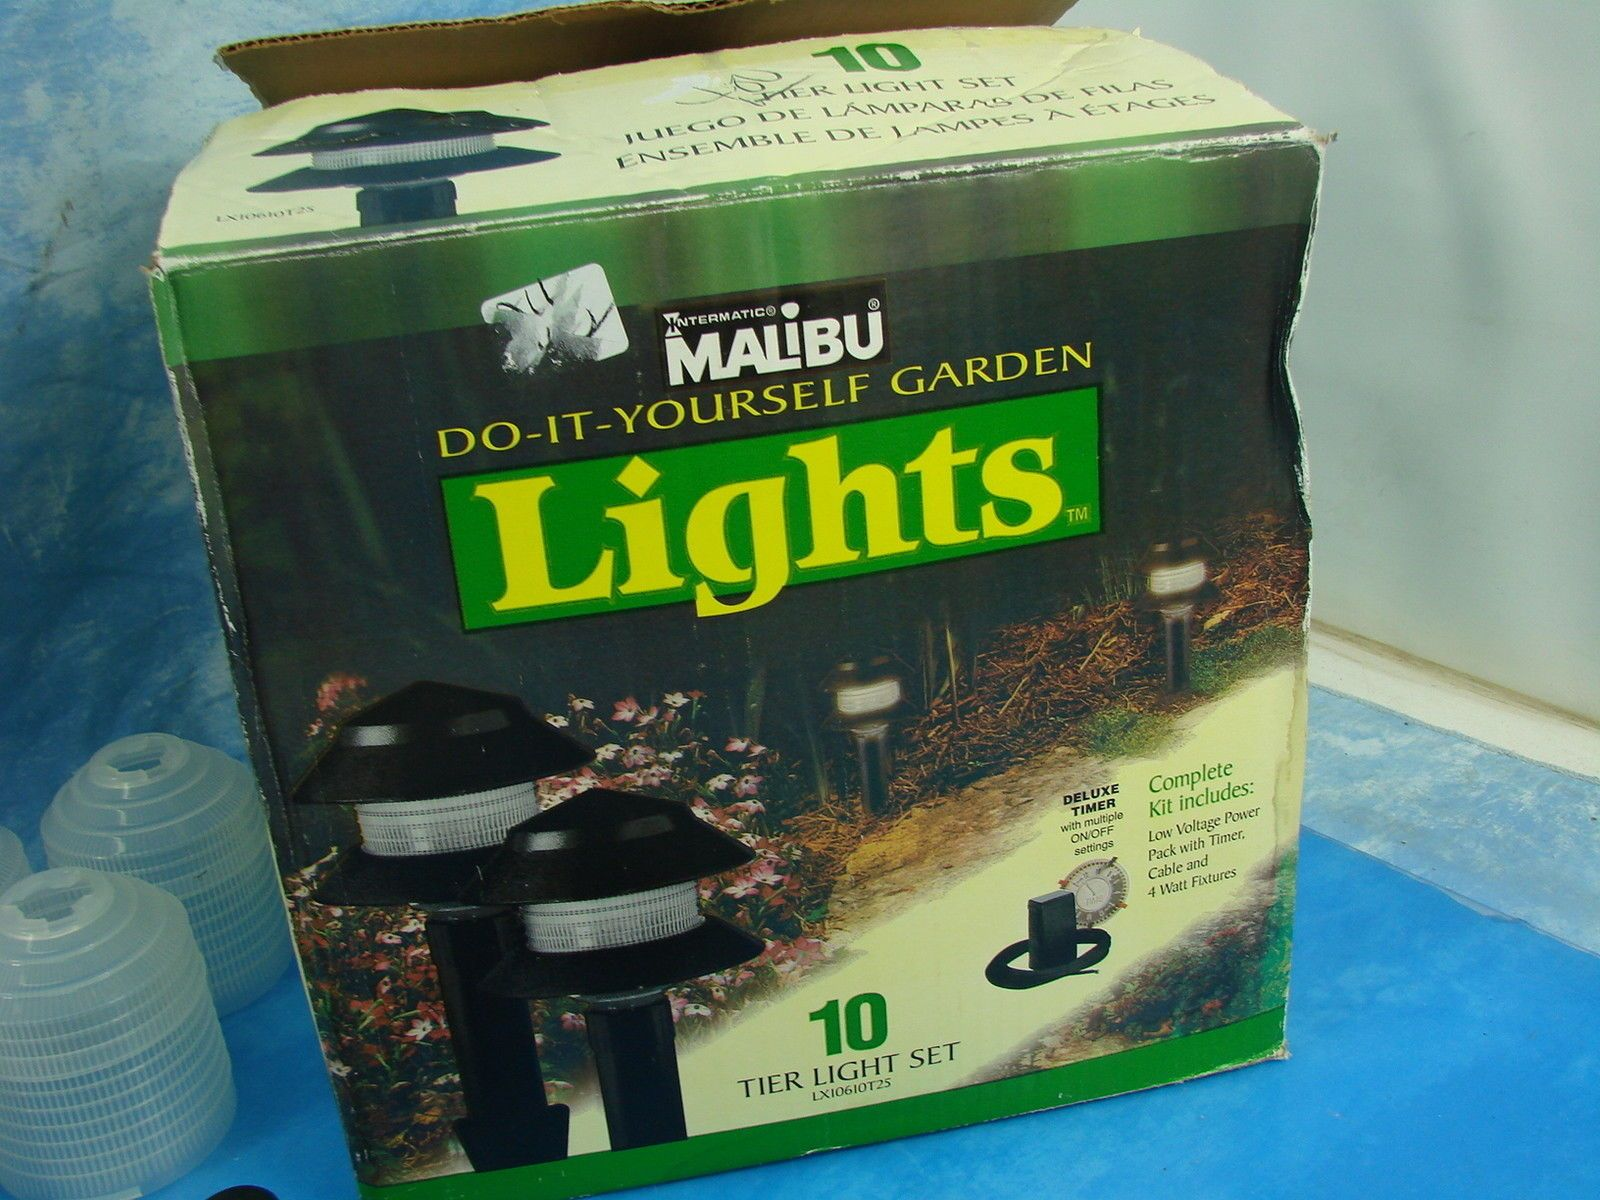 Intermatic Malibu Do It Yourself Garden Lights 9 Light Fixtures 4 Watt  Bulbs | EBay